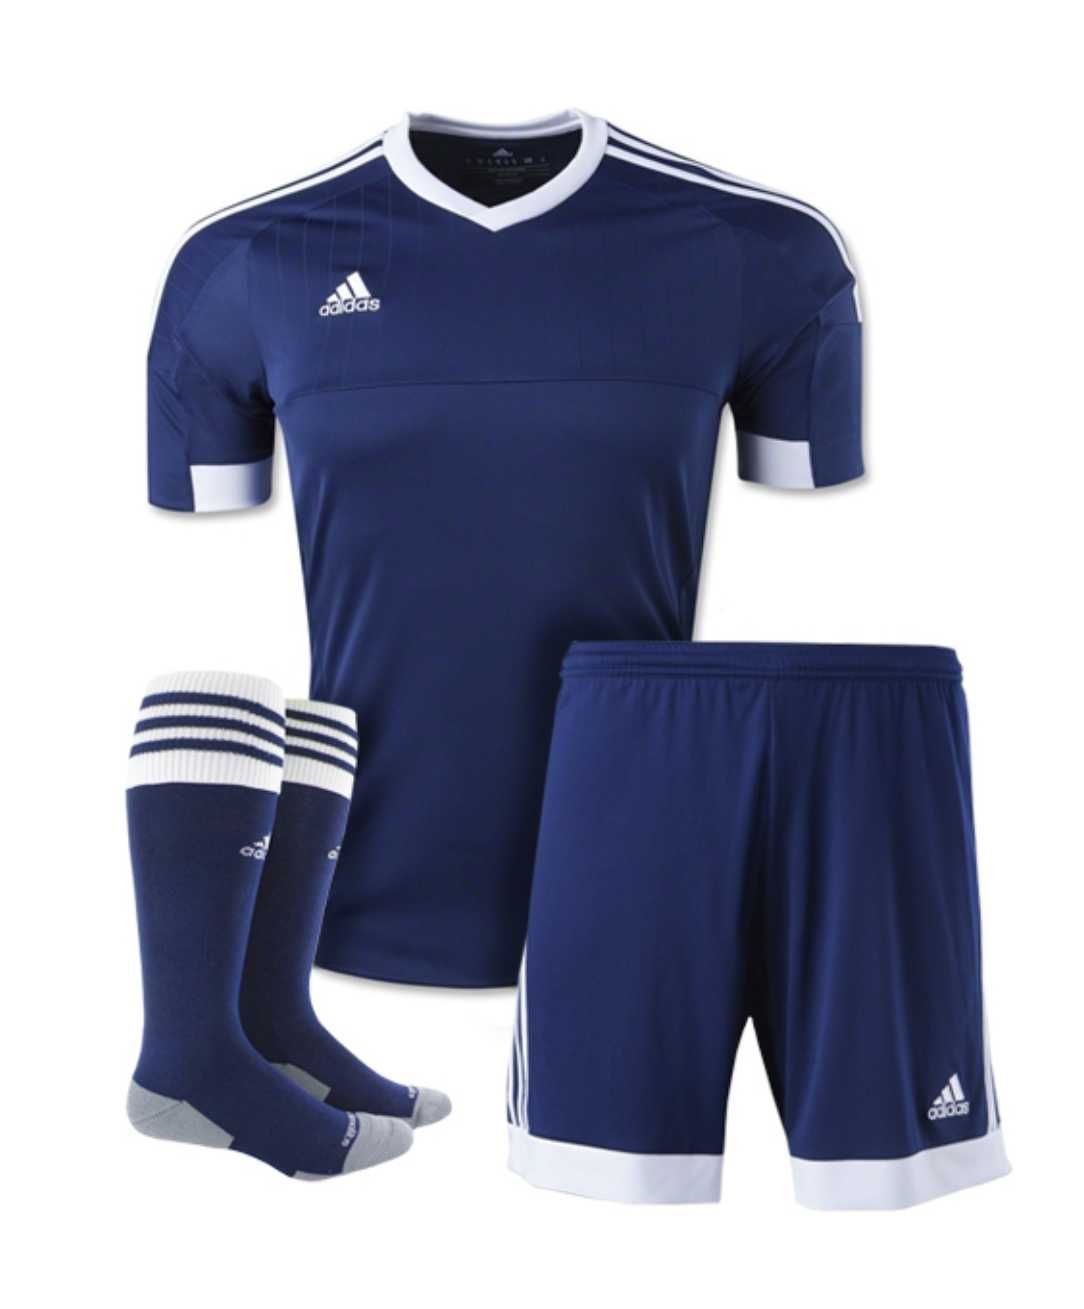 buy online dc1a9 7d299 adidas Tiro 15 DryDye Soccer Uniform | mark | Custom ...